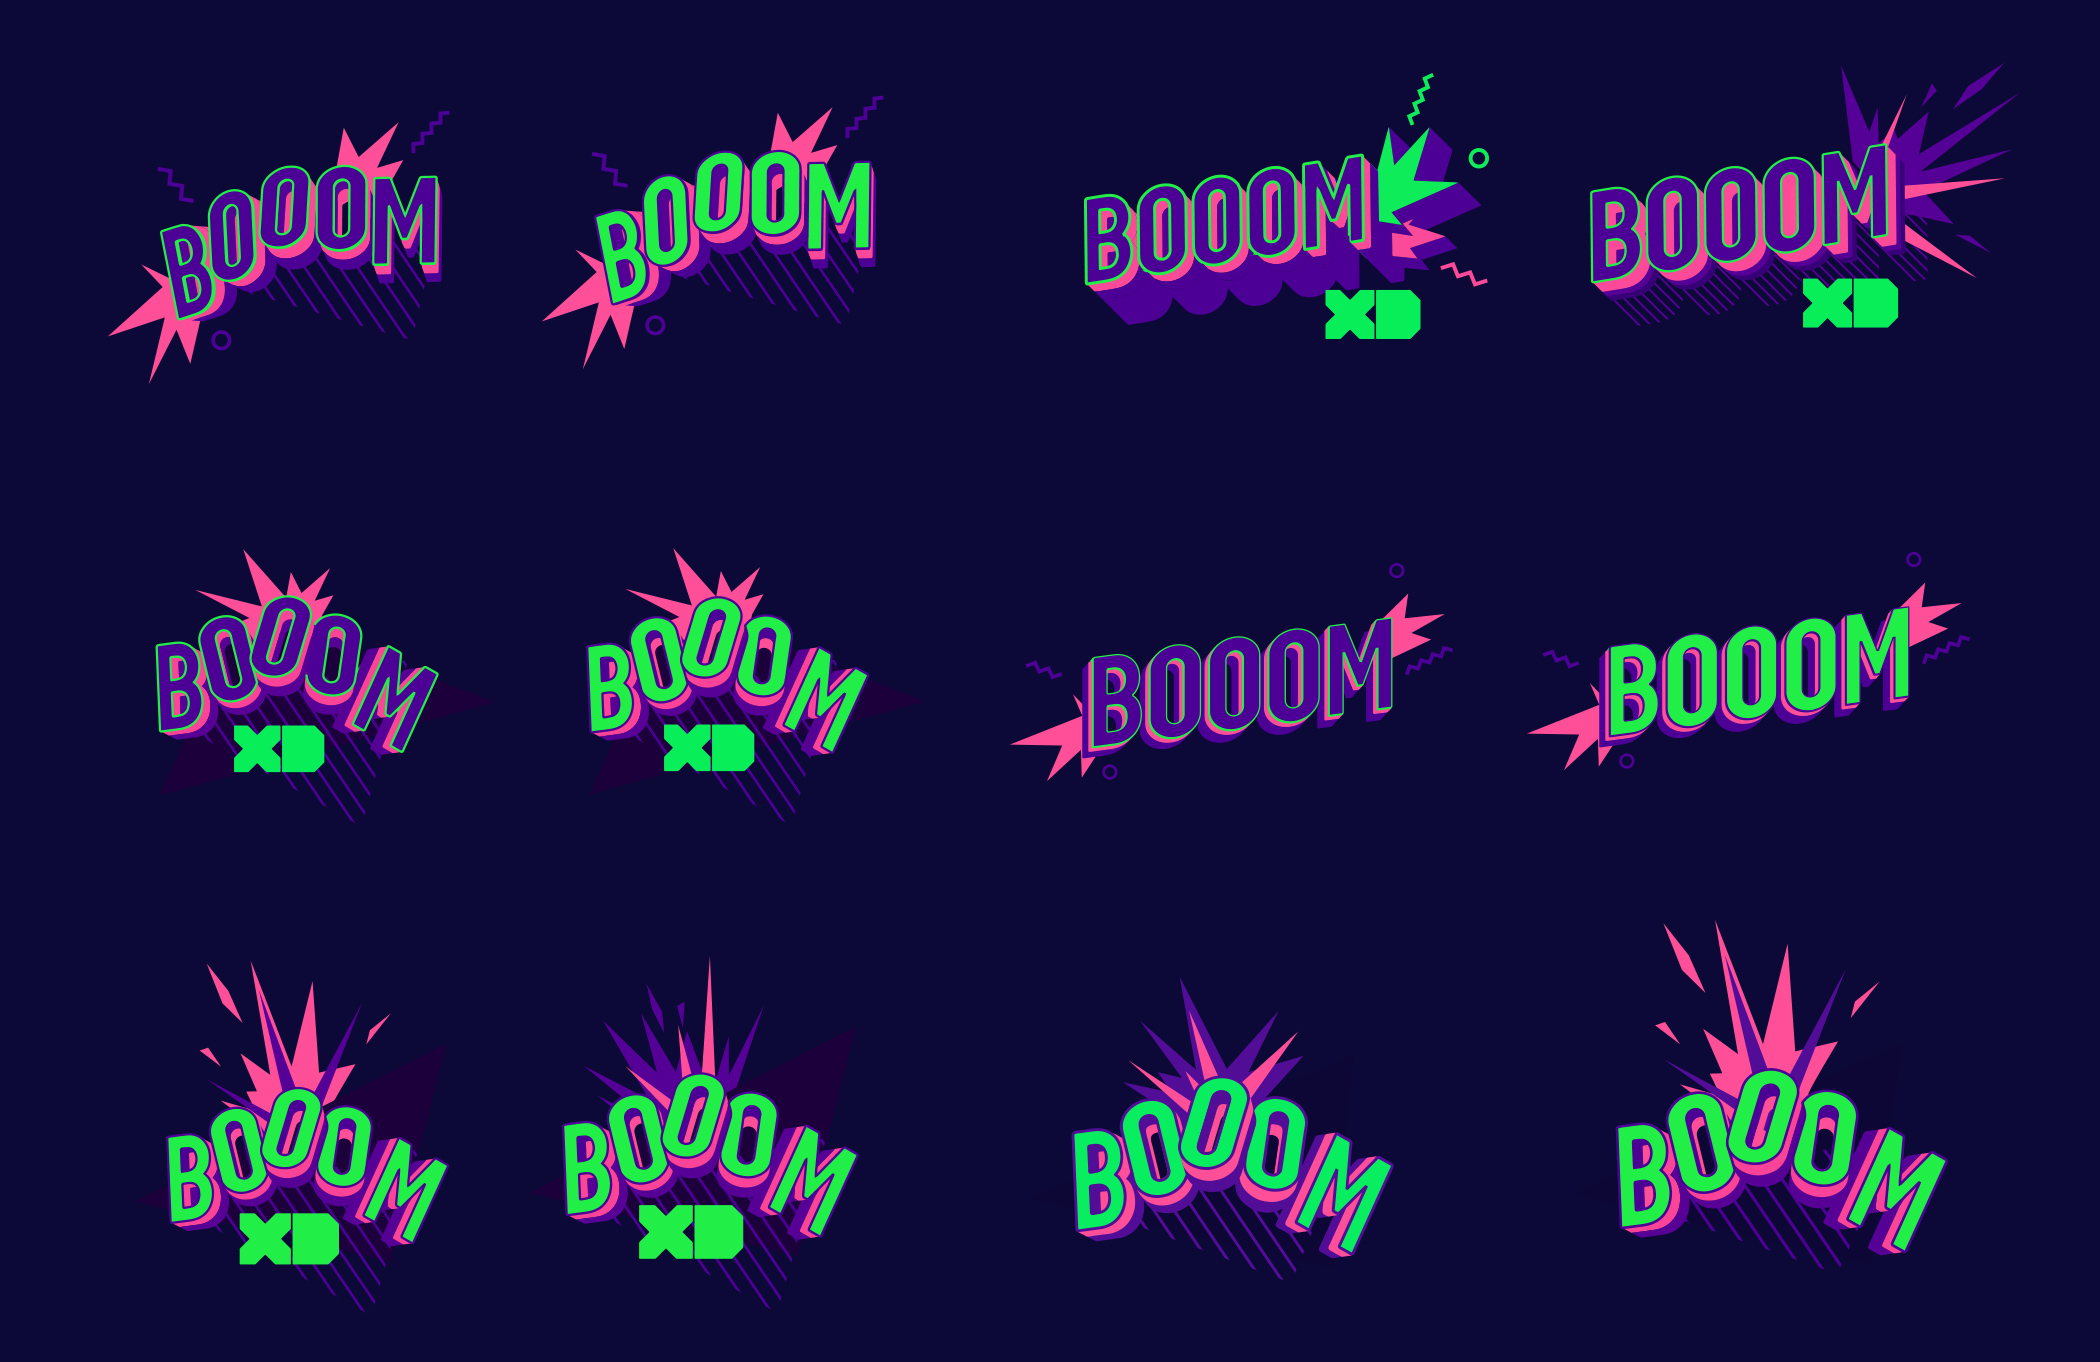 Boom_logo_Sketches